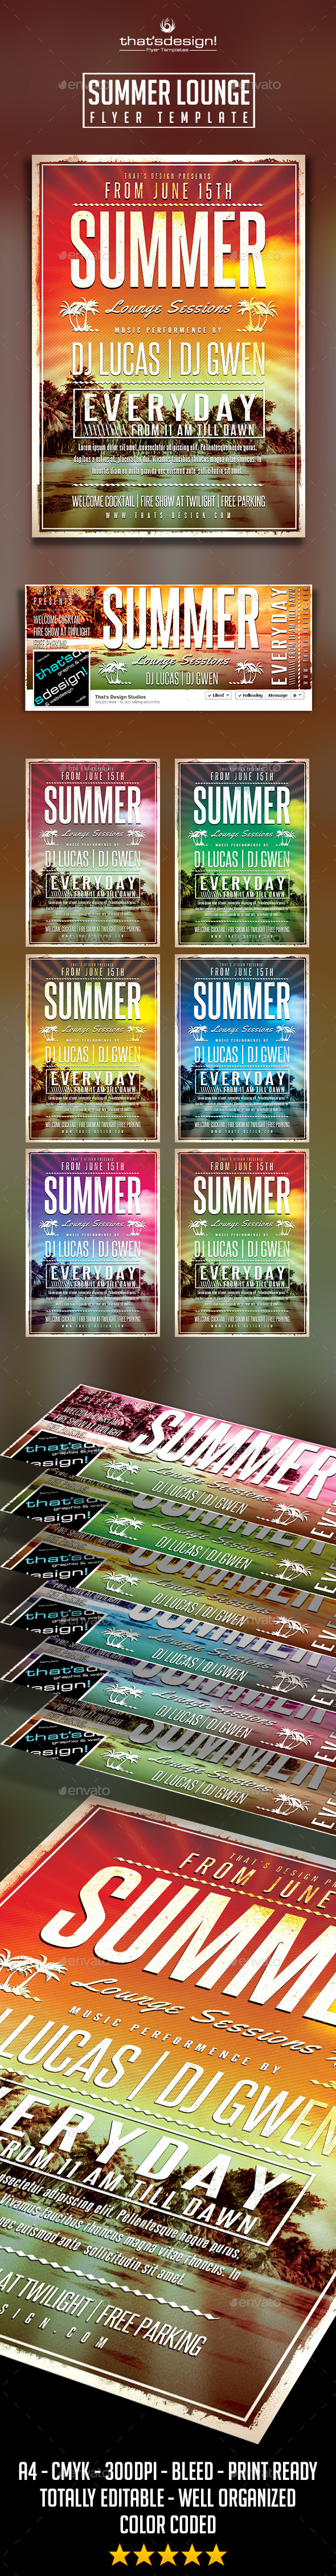 Summer Lounge Flyer Template V2